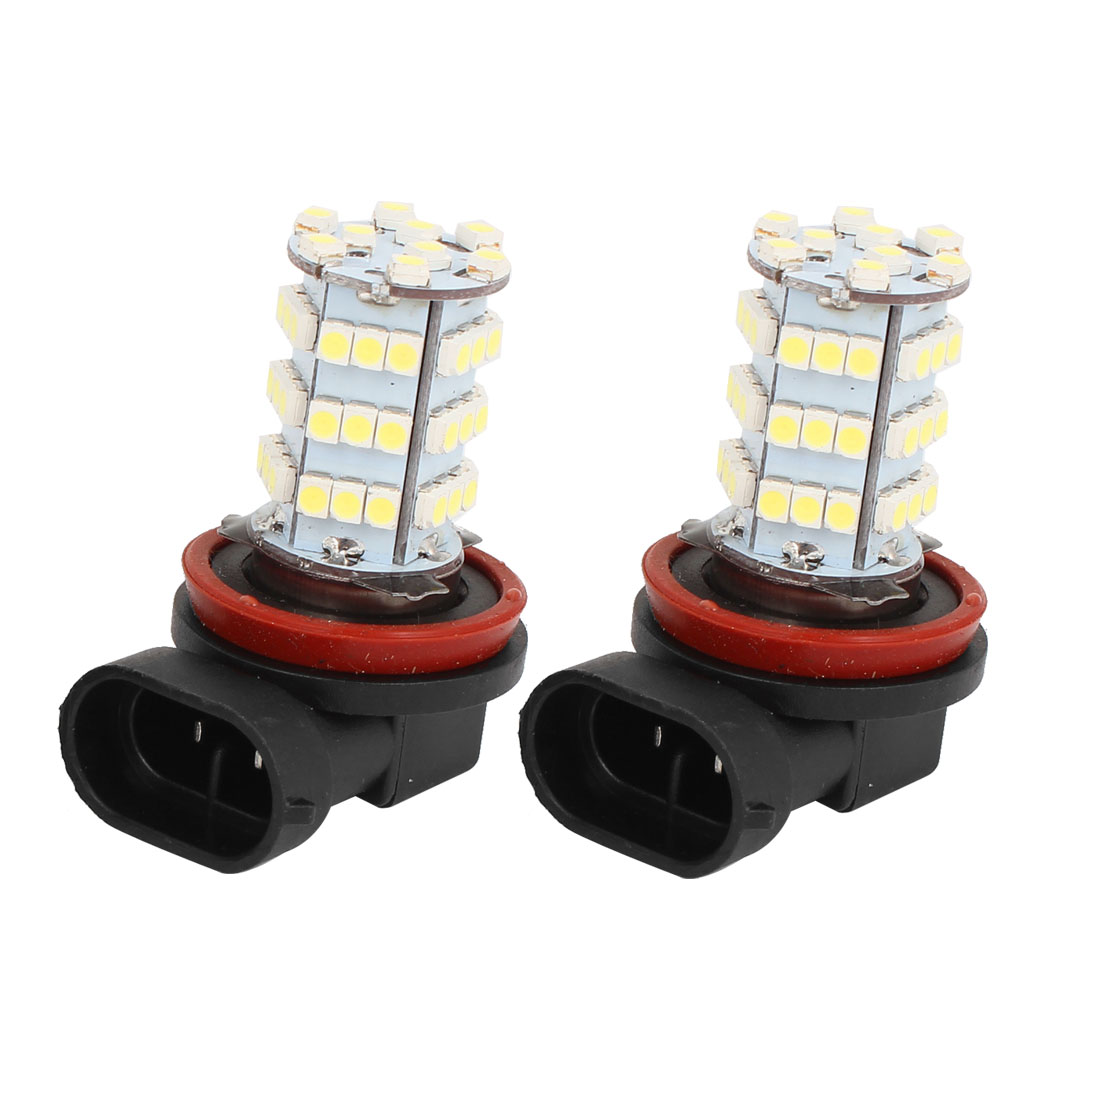 Car White H11 54 LED 3528 1210 SMD Bulbs Fog Headlight Light Lamp 2 Pcs